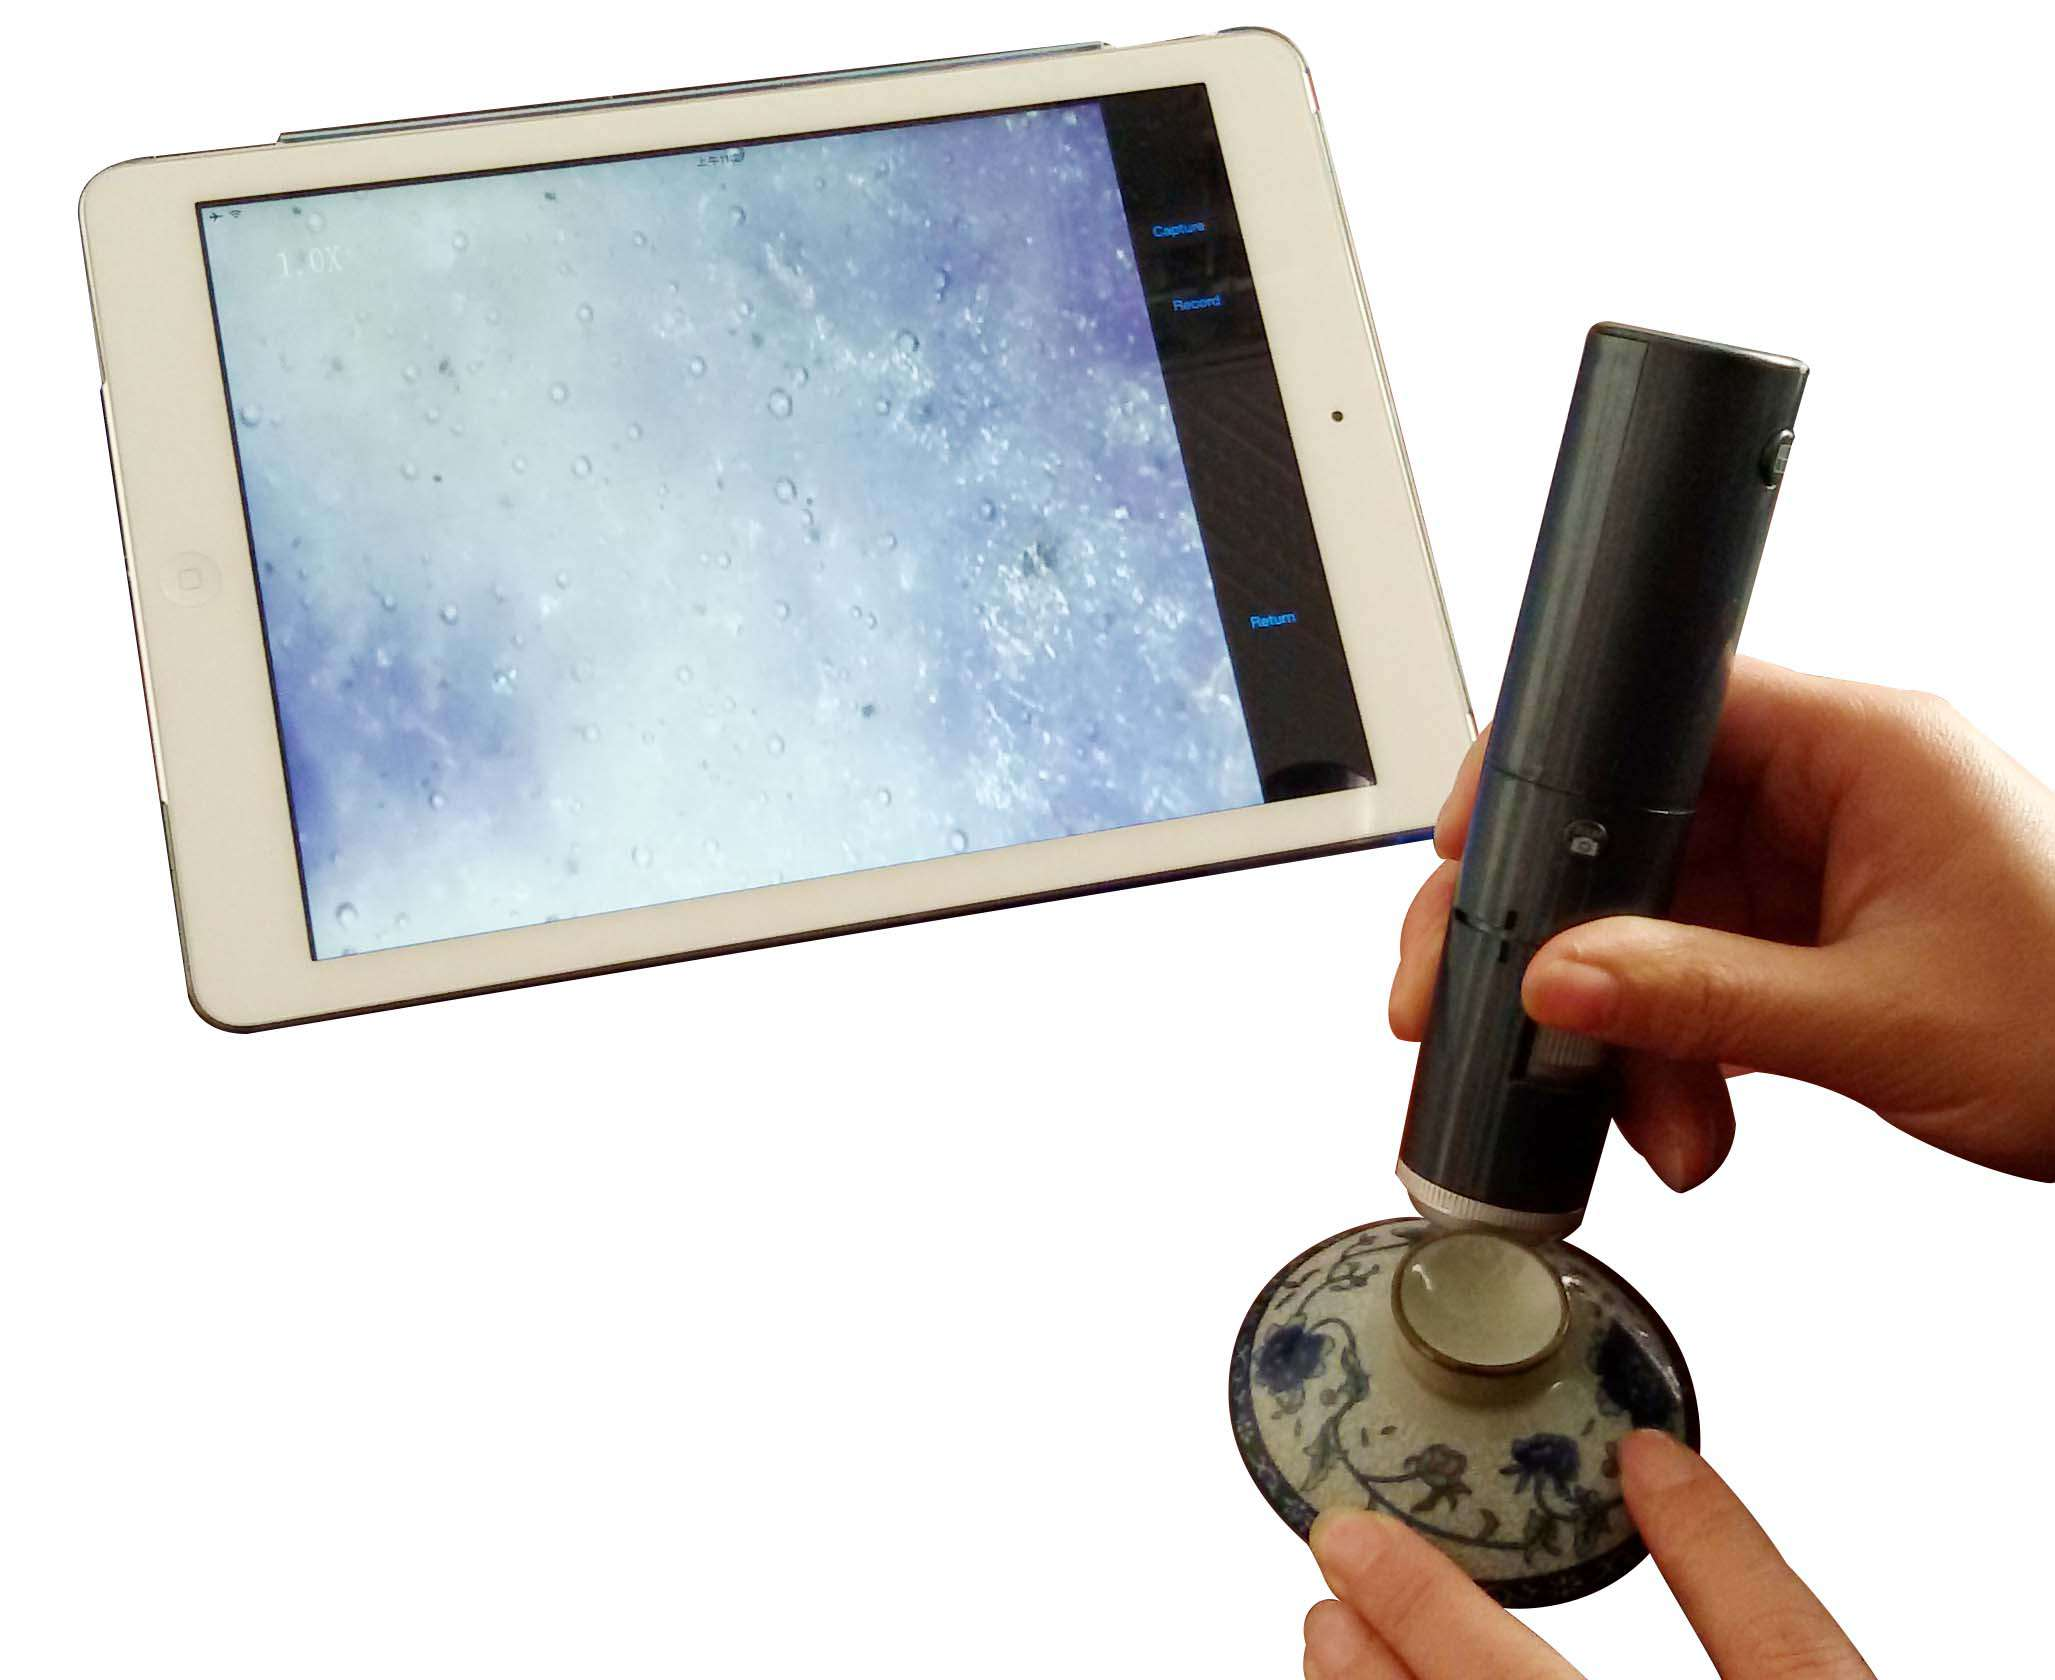 Mini 600 times antique jewelry identification magnifying glass portable porcelain bubble detector microscope multi-function